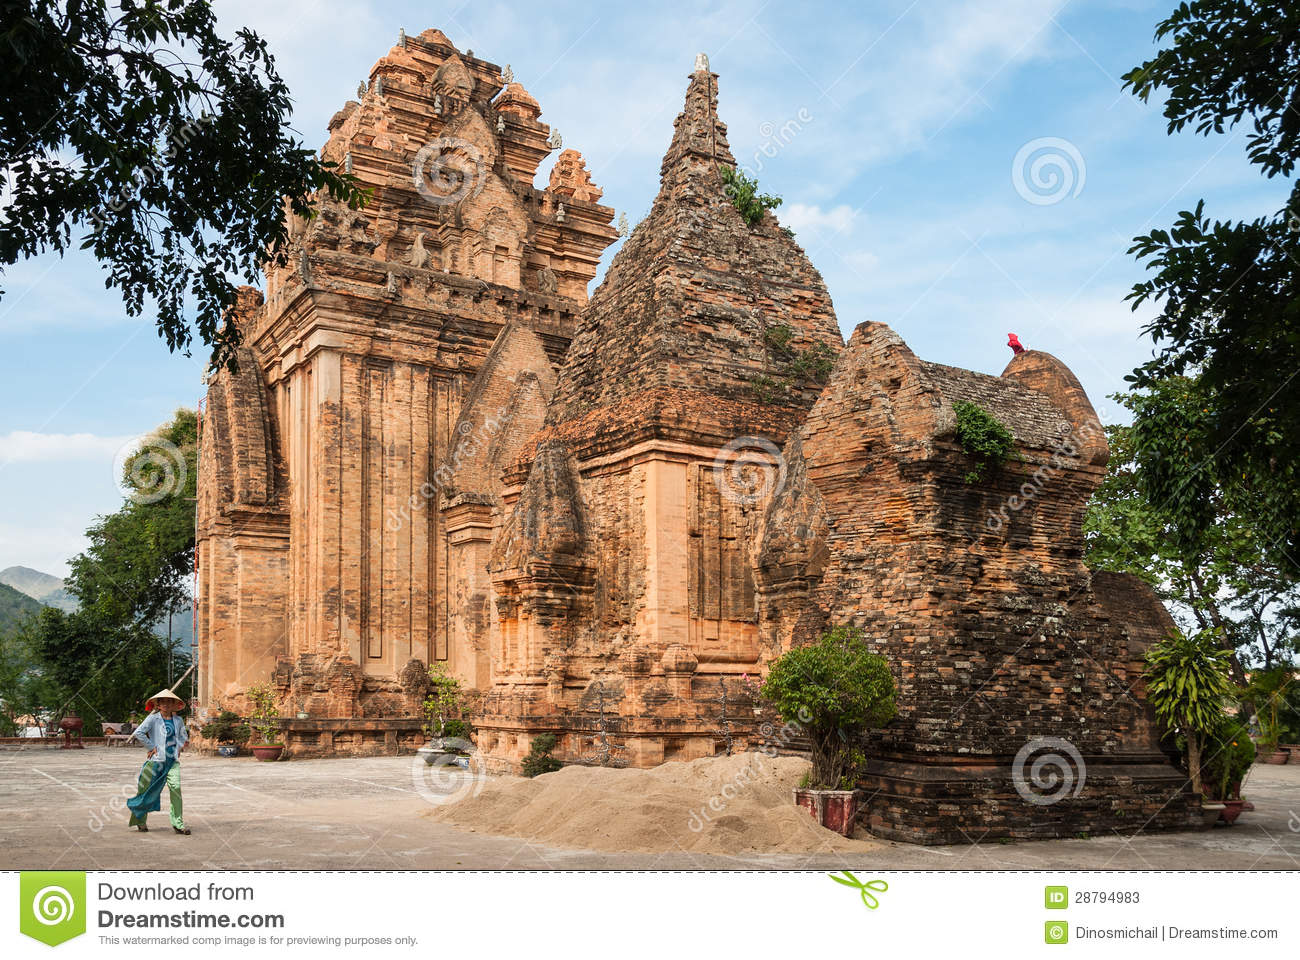 The Cham Towers in Vietnam